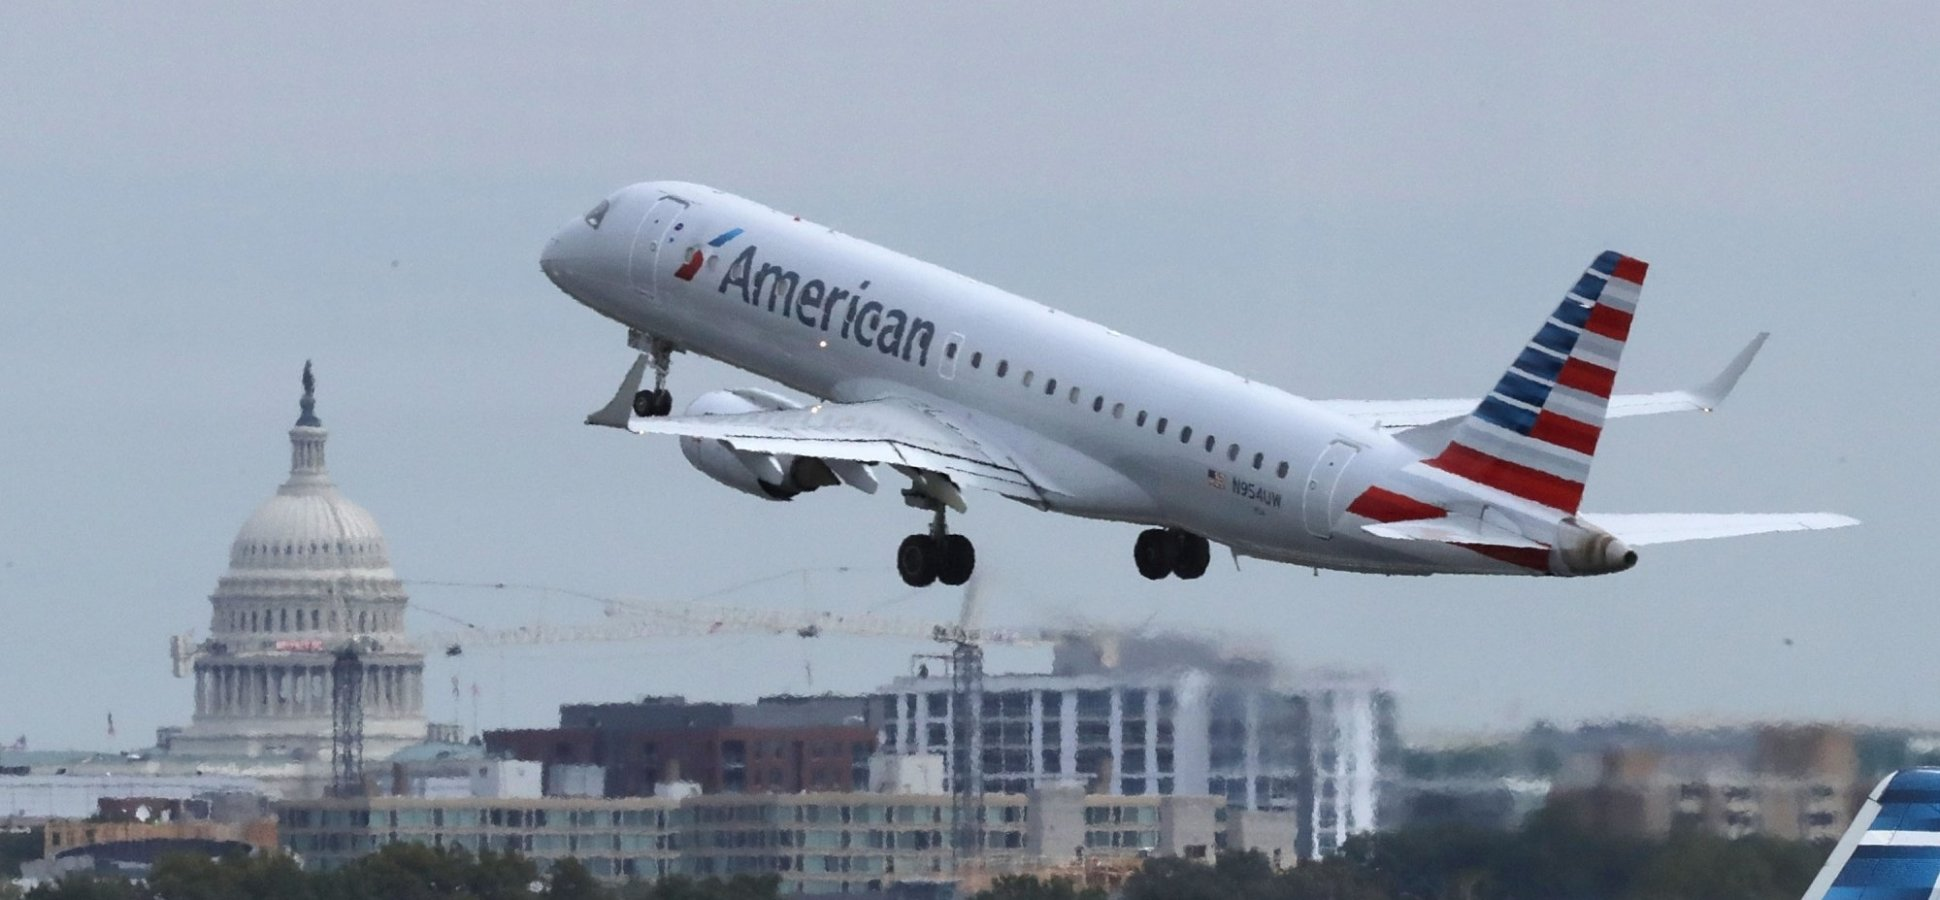 These Are the Next 2 Really Insulting Changes Airlines Want to Impose on Consumers